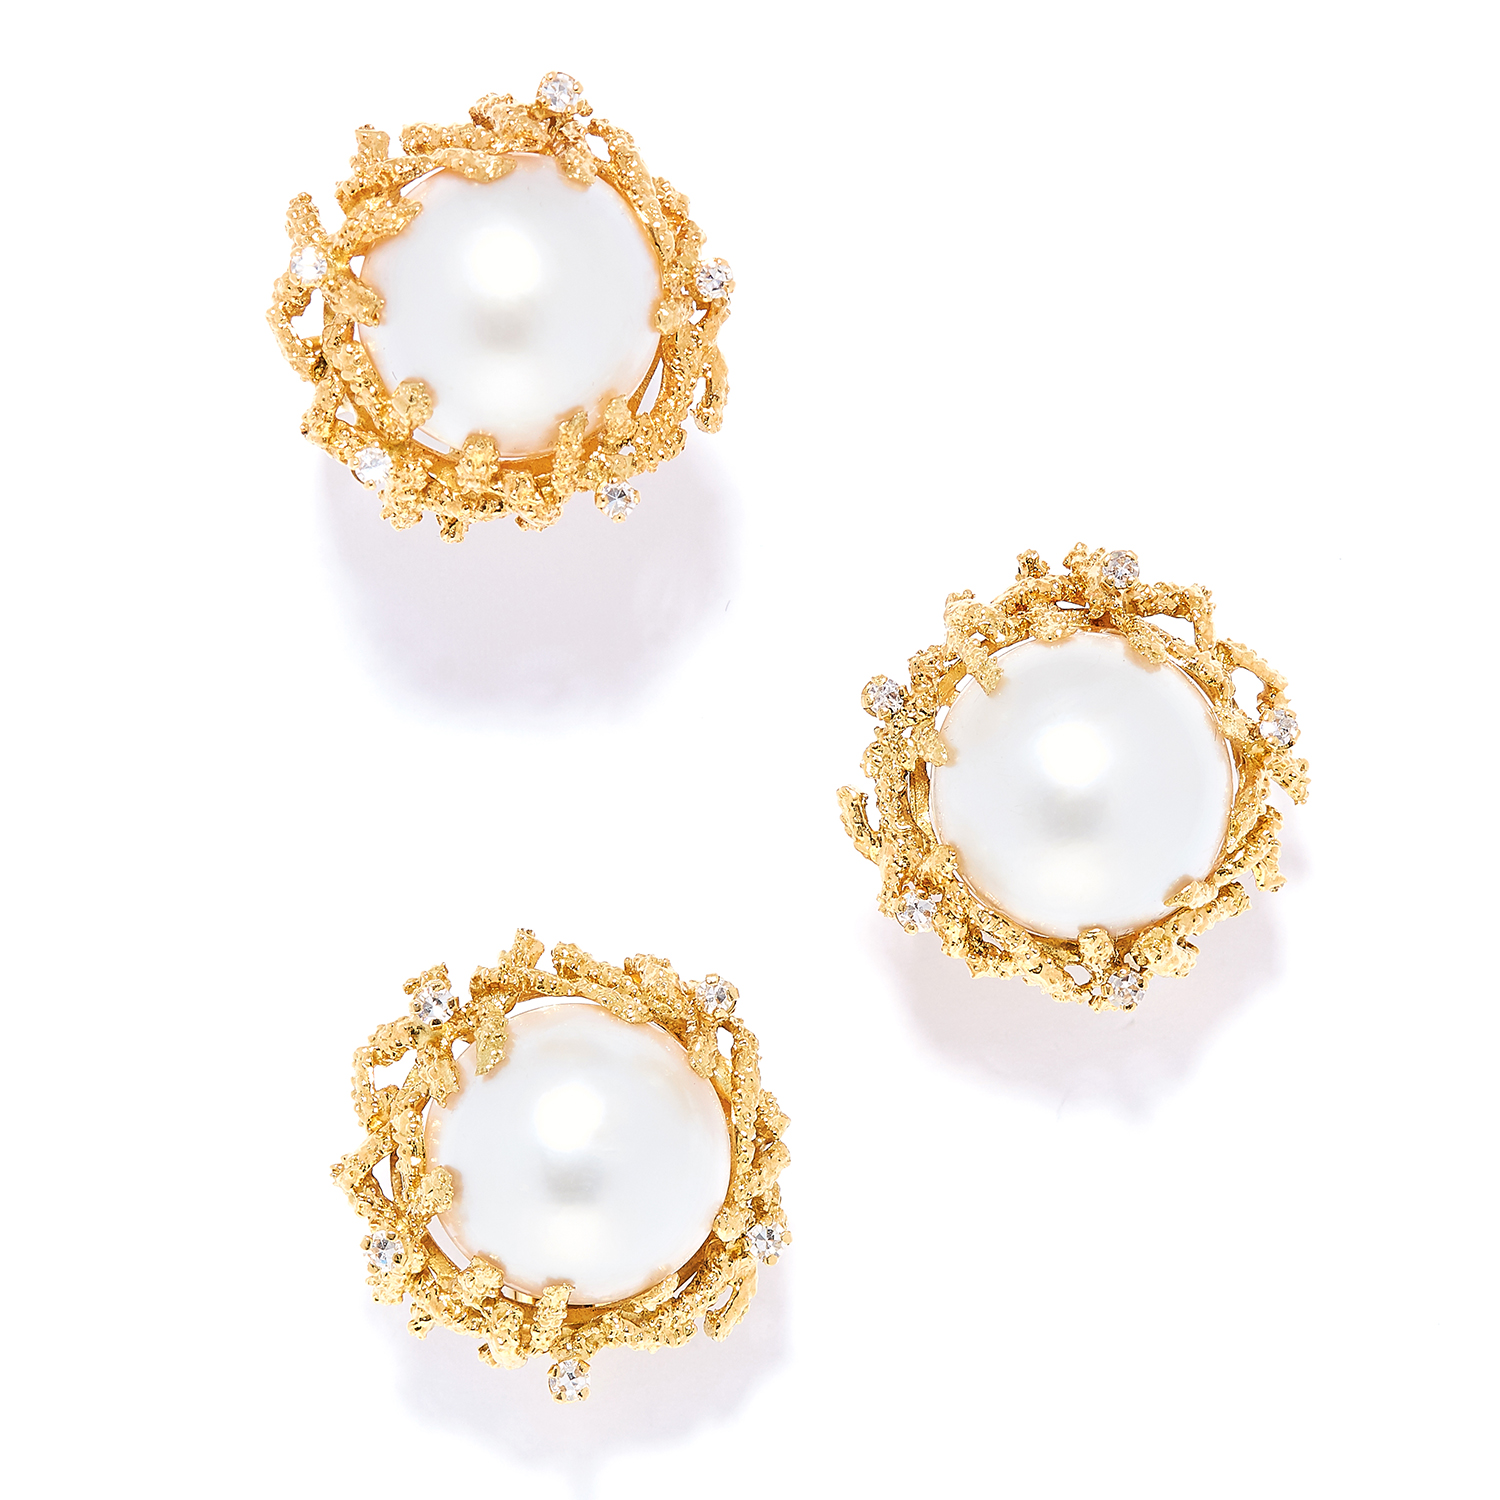 PEARL AND DIAMOND RING AND EARRINGS SUITE, BEN ROSENFELD, CIRCA 1976-77 in 18ct yellow gold, each